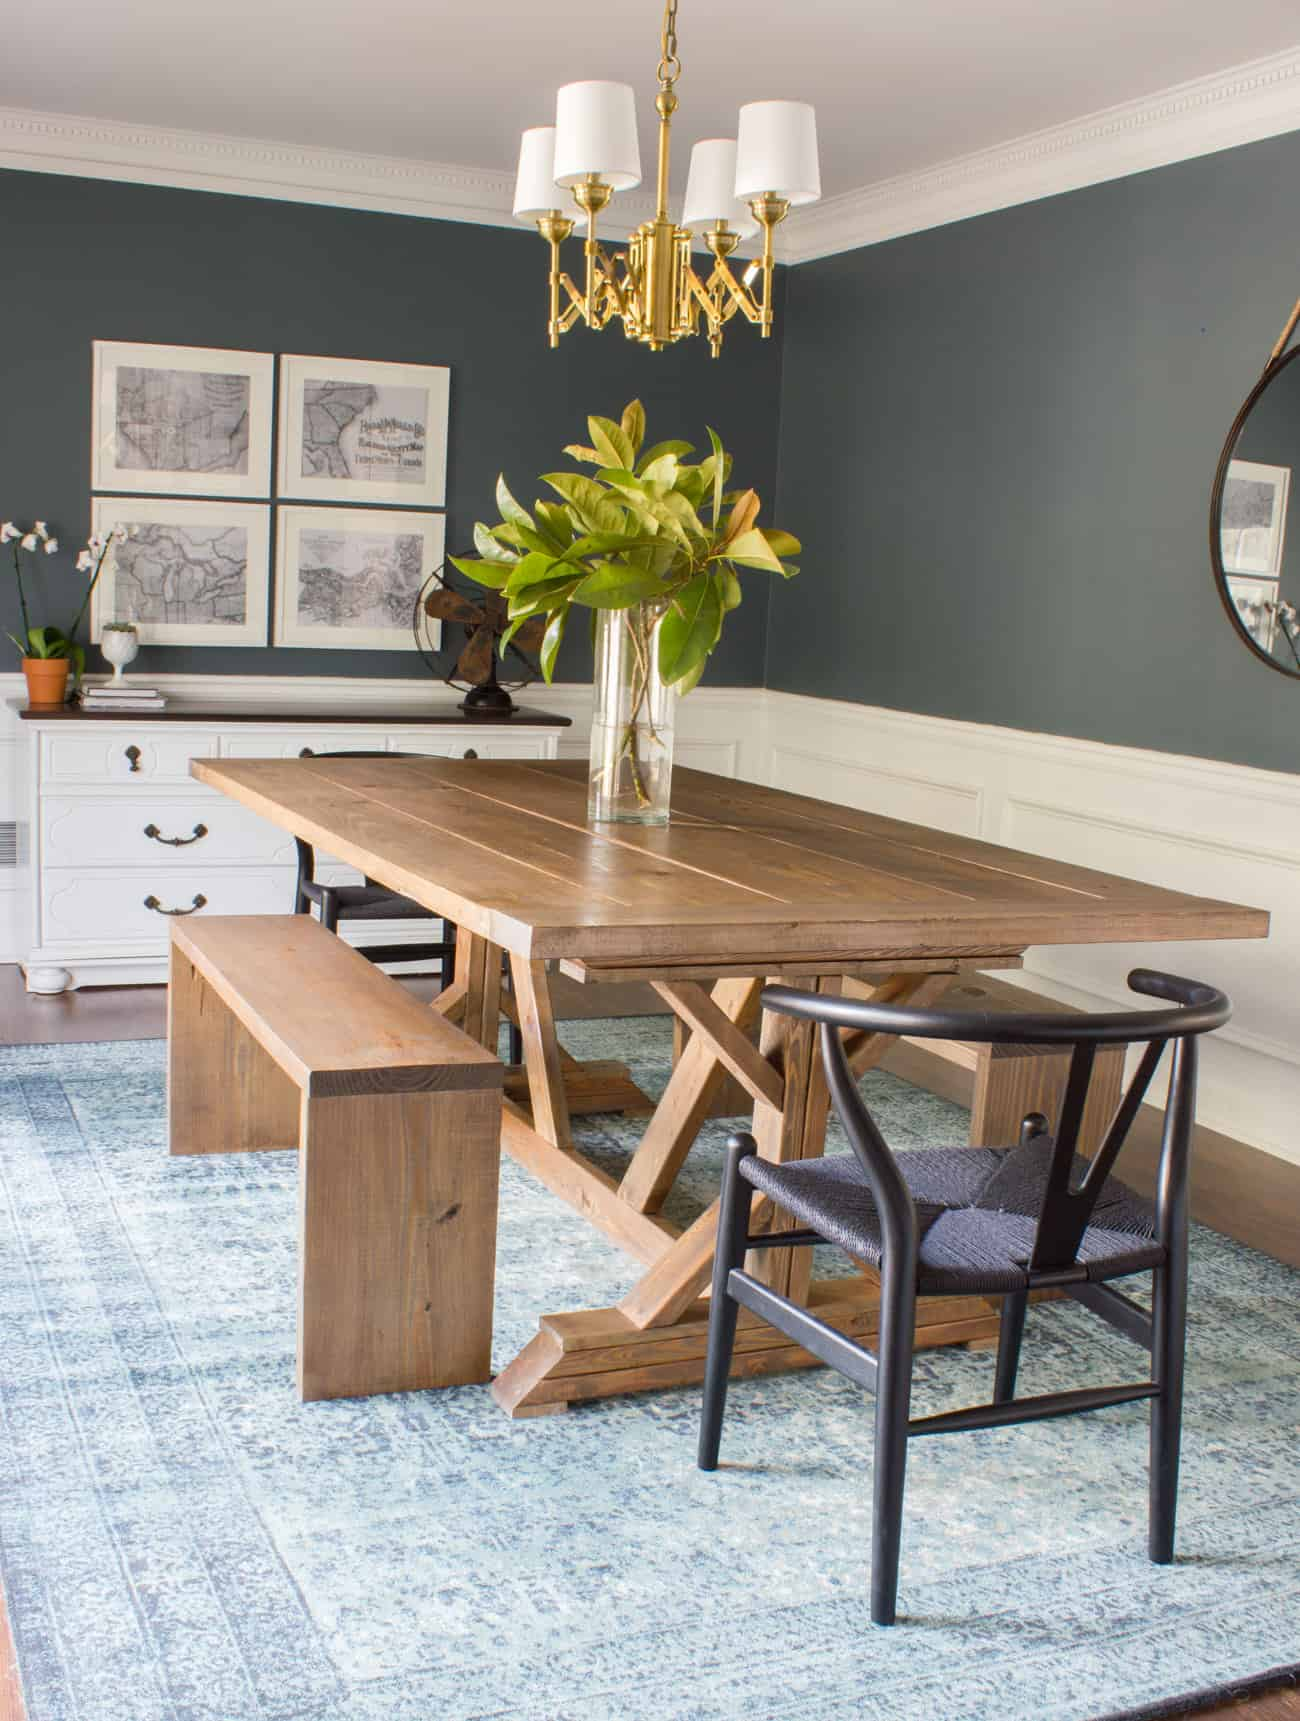 2020 Dining Room Trends What To Expect